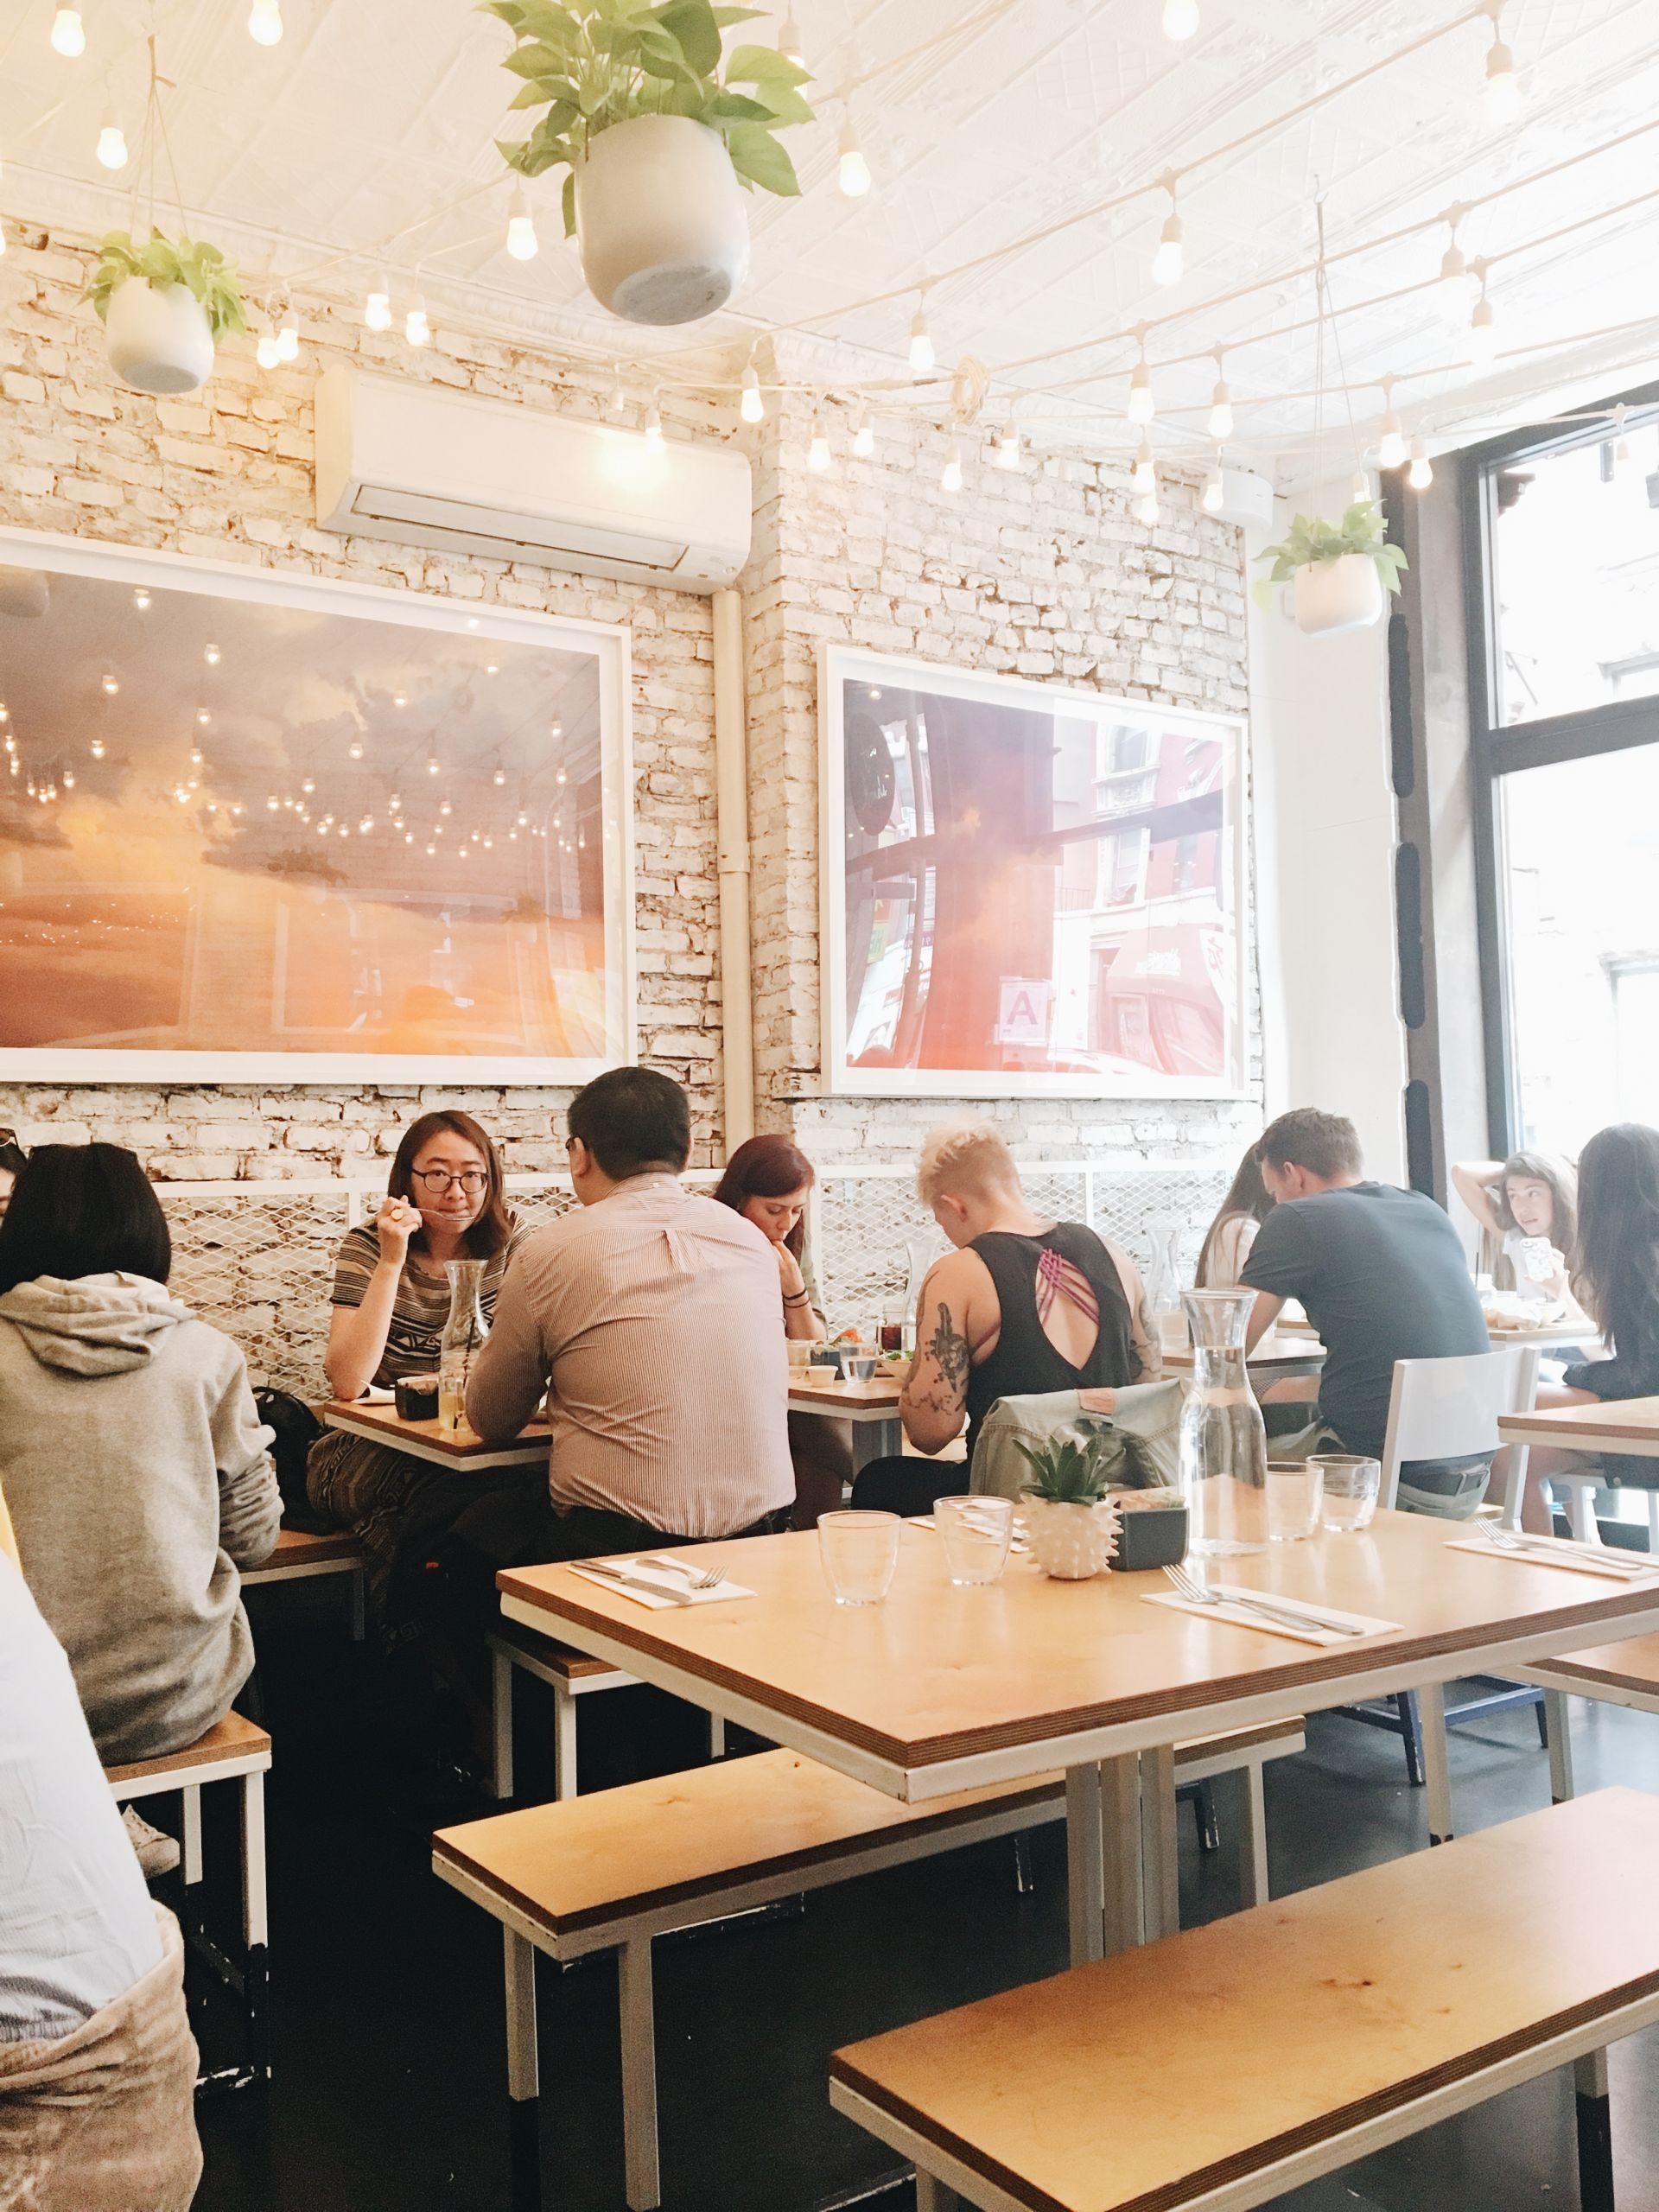 Two Hands | Where To Eat in NYC